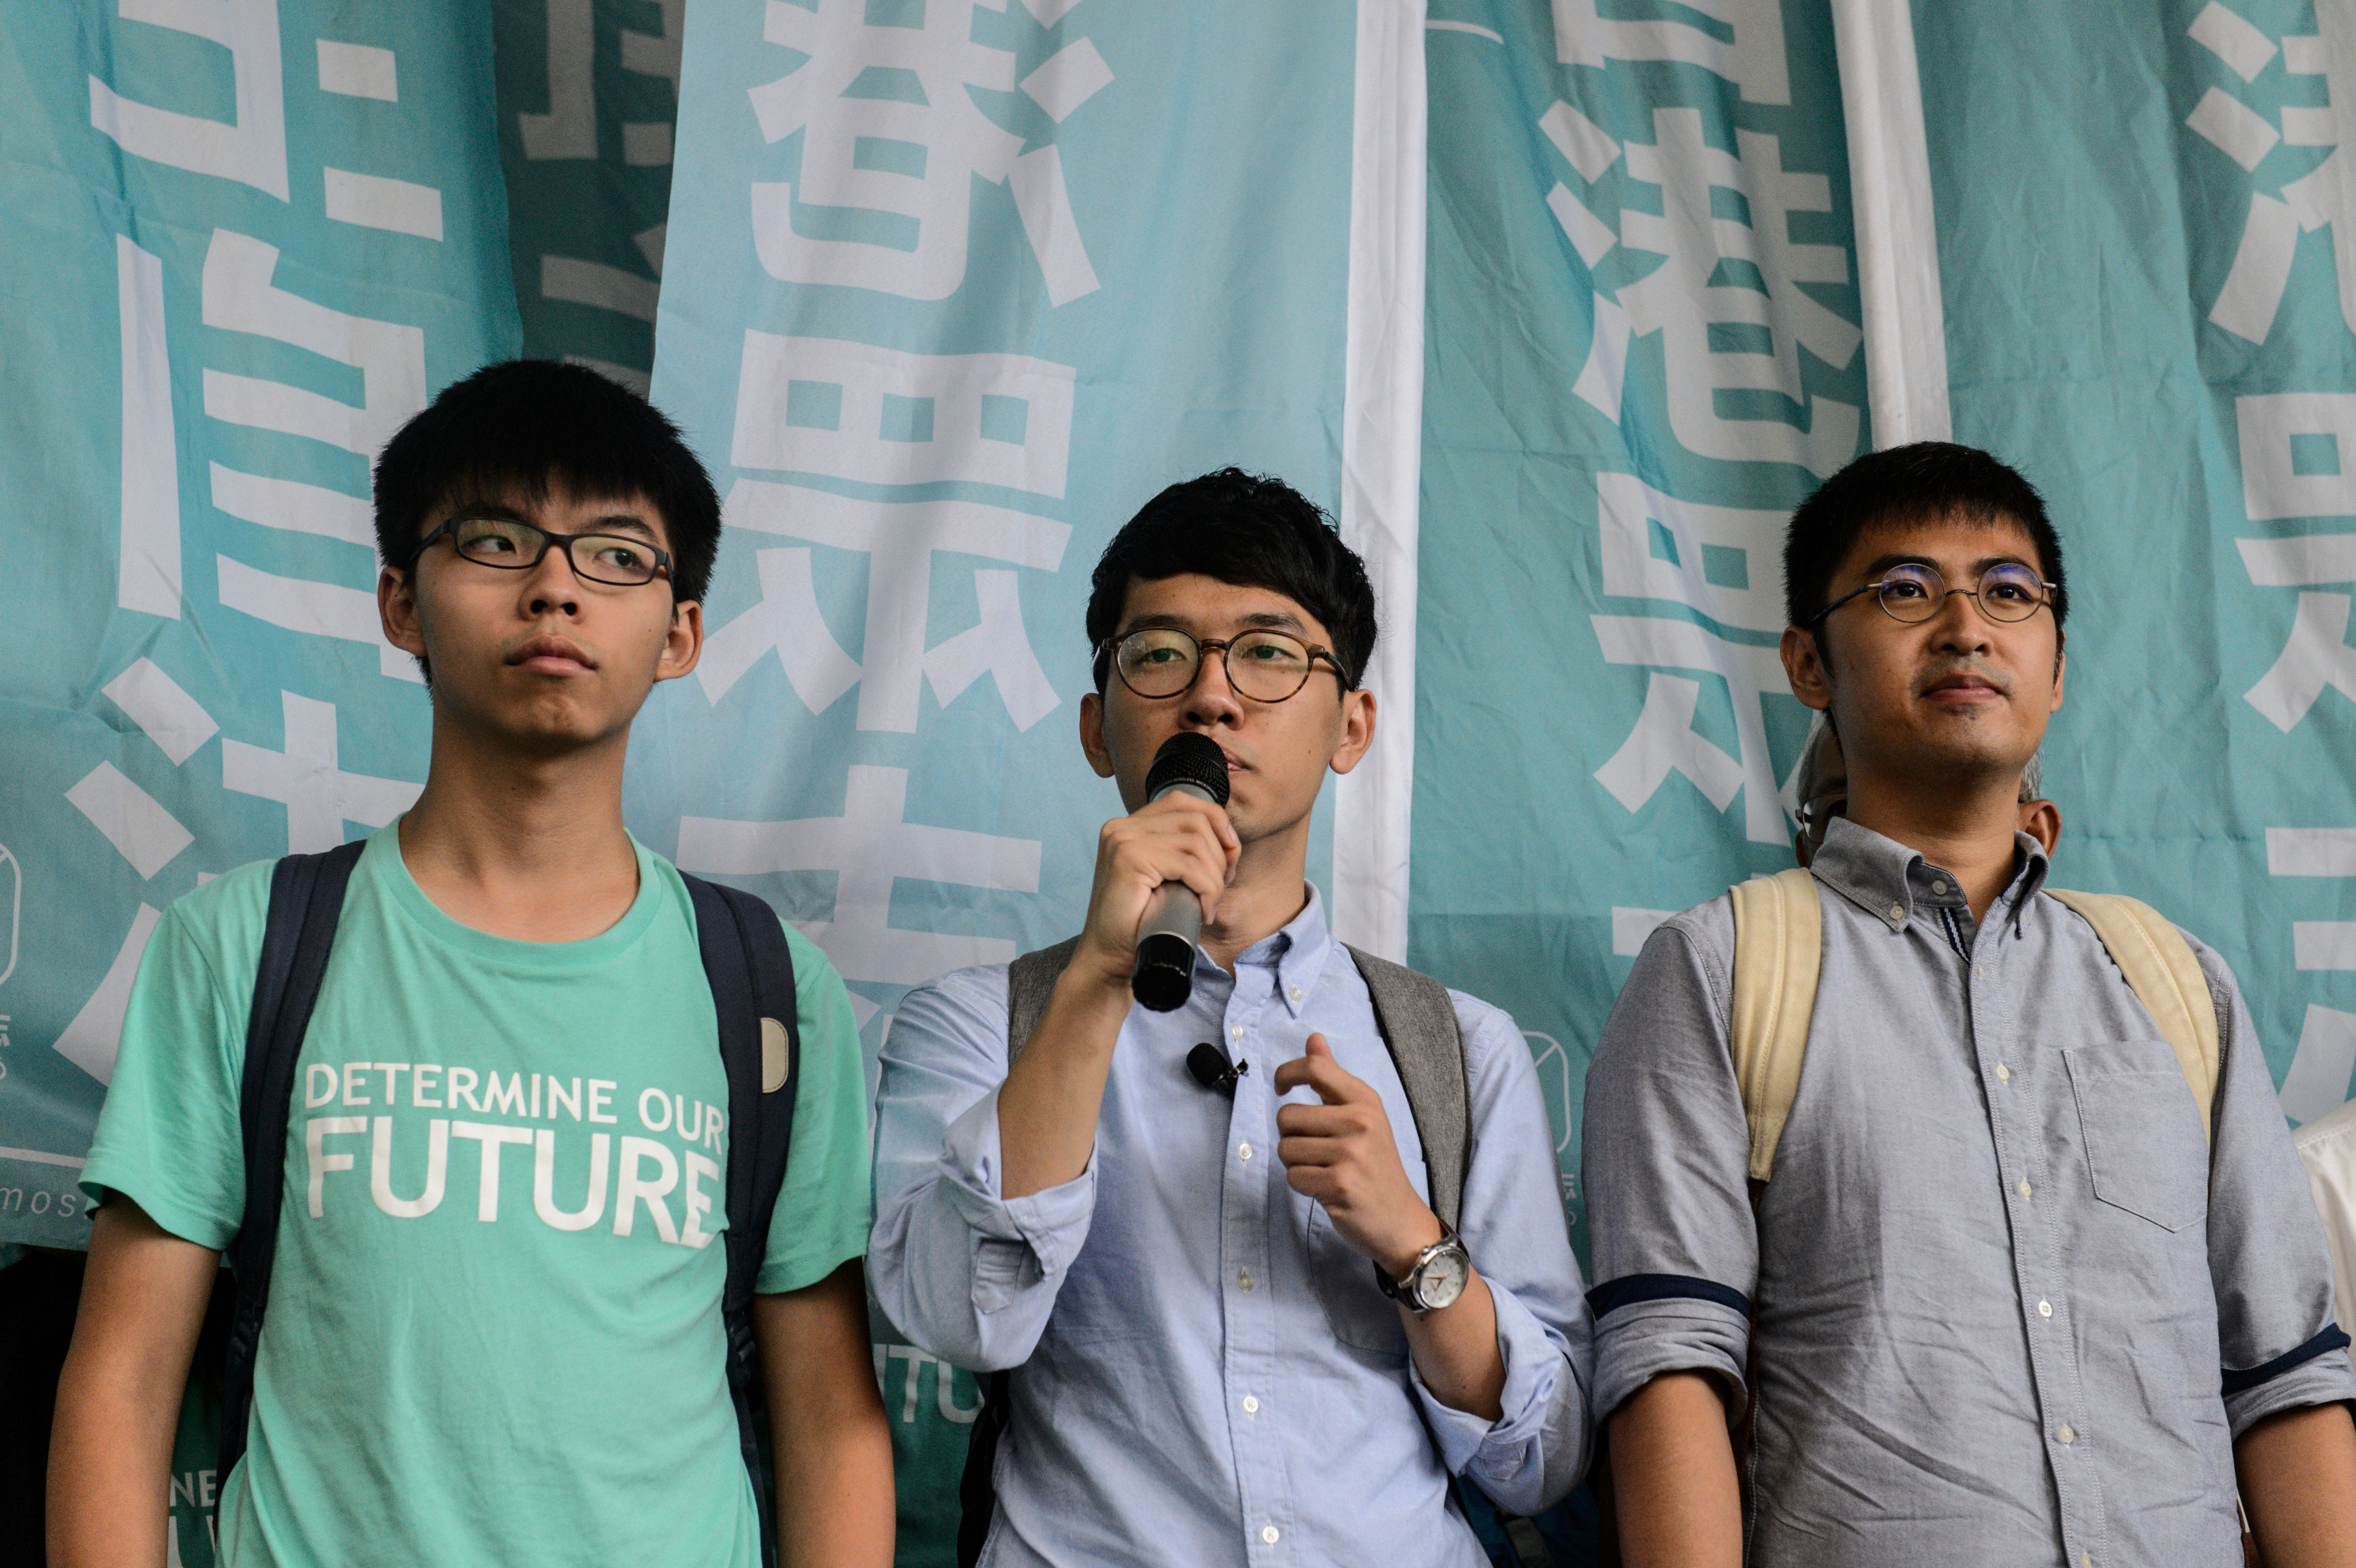 Leaders of Hong Kong's Umbrella Revolution, left to right, Joshua Wong, 19; Nathan Law, 23; and Alex Chow, 25, speak to the press following their sentencing at the Eastern Court in Hong Kong on Aug. 15, 2016